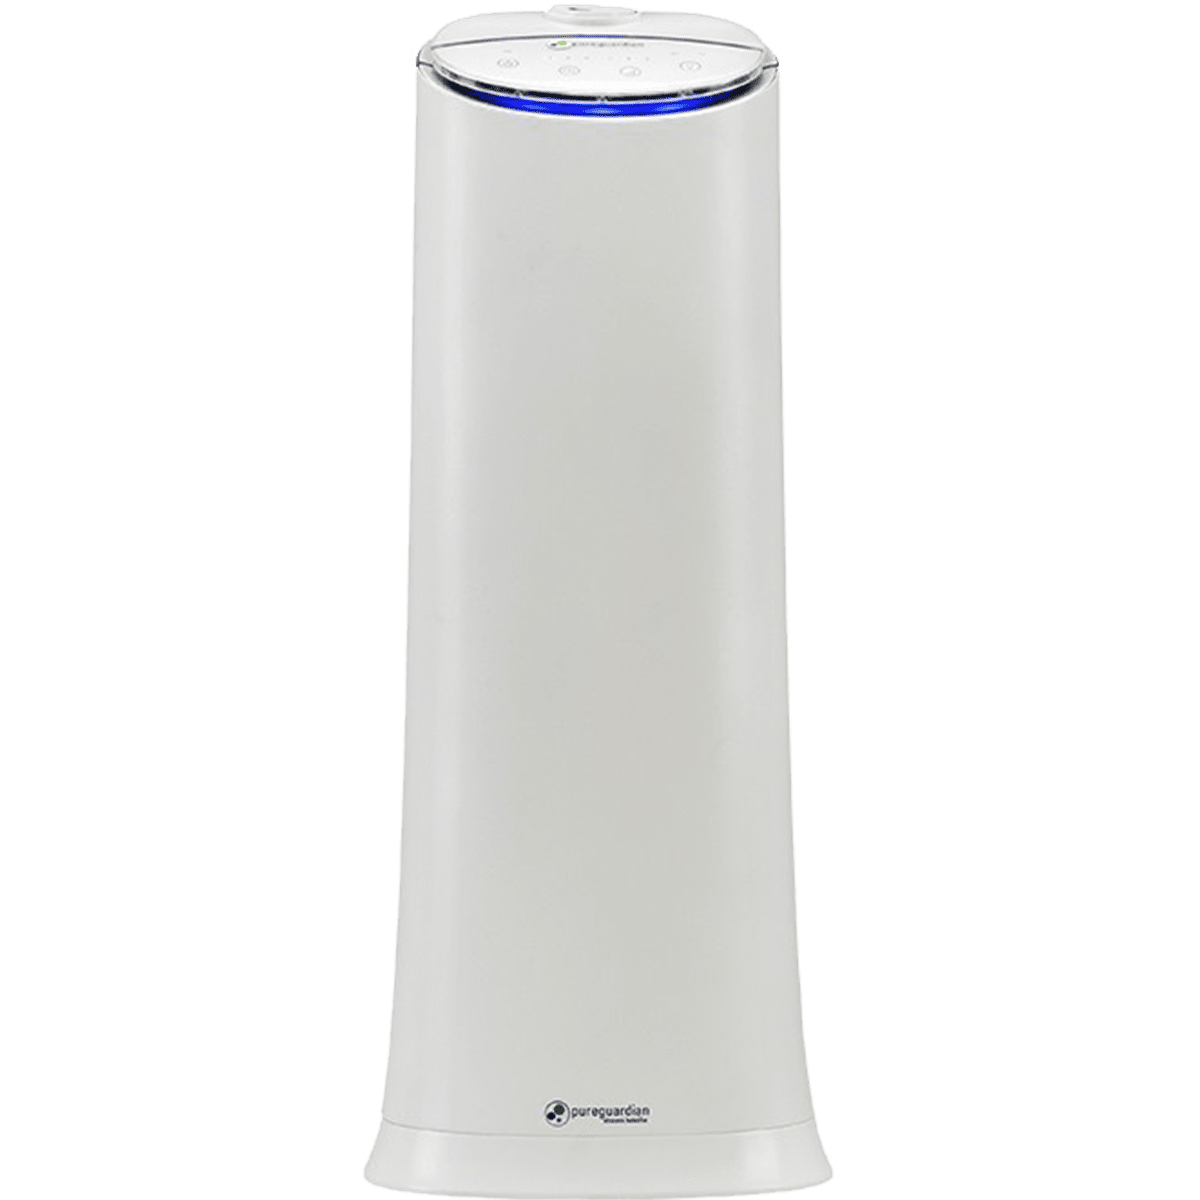 PureGuardian 100-Hour Ultrasonic Tower Humidifier ge7108